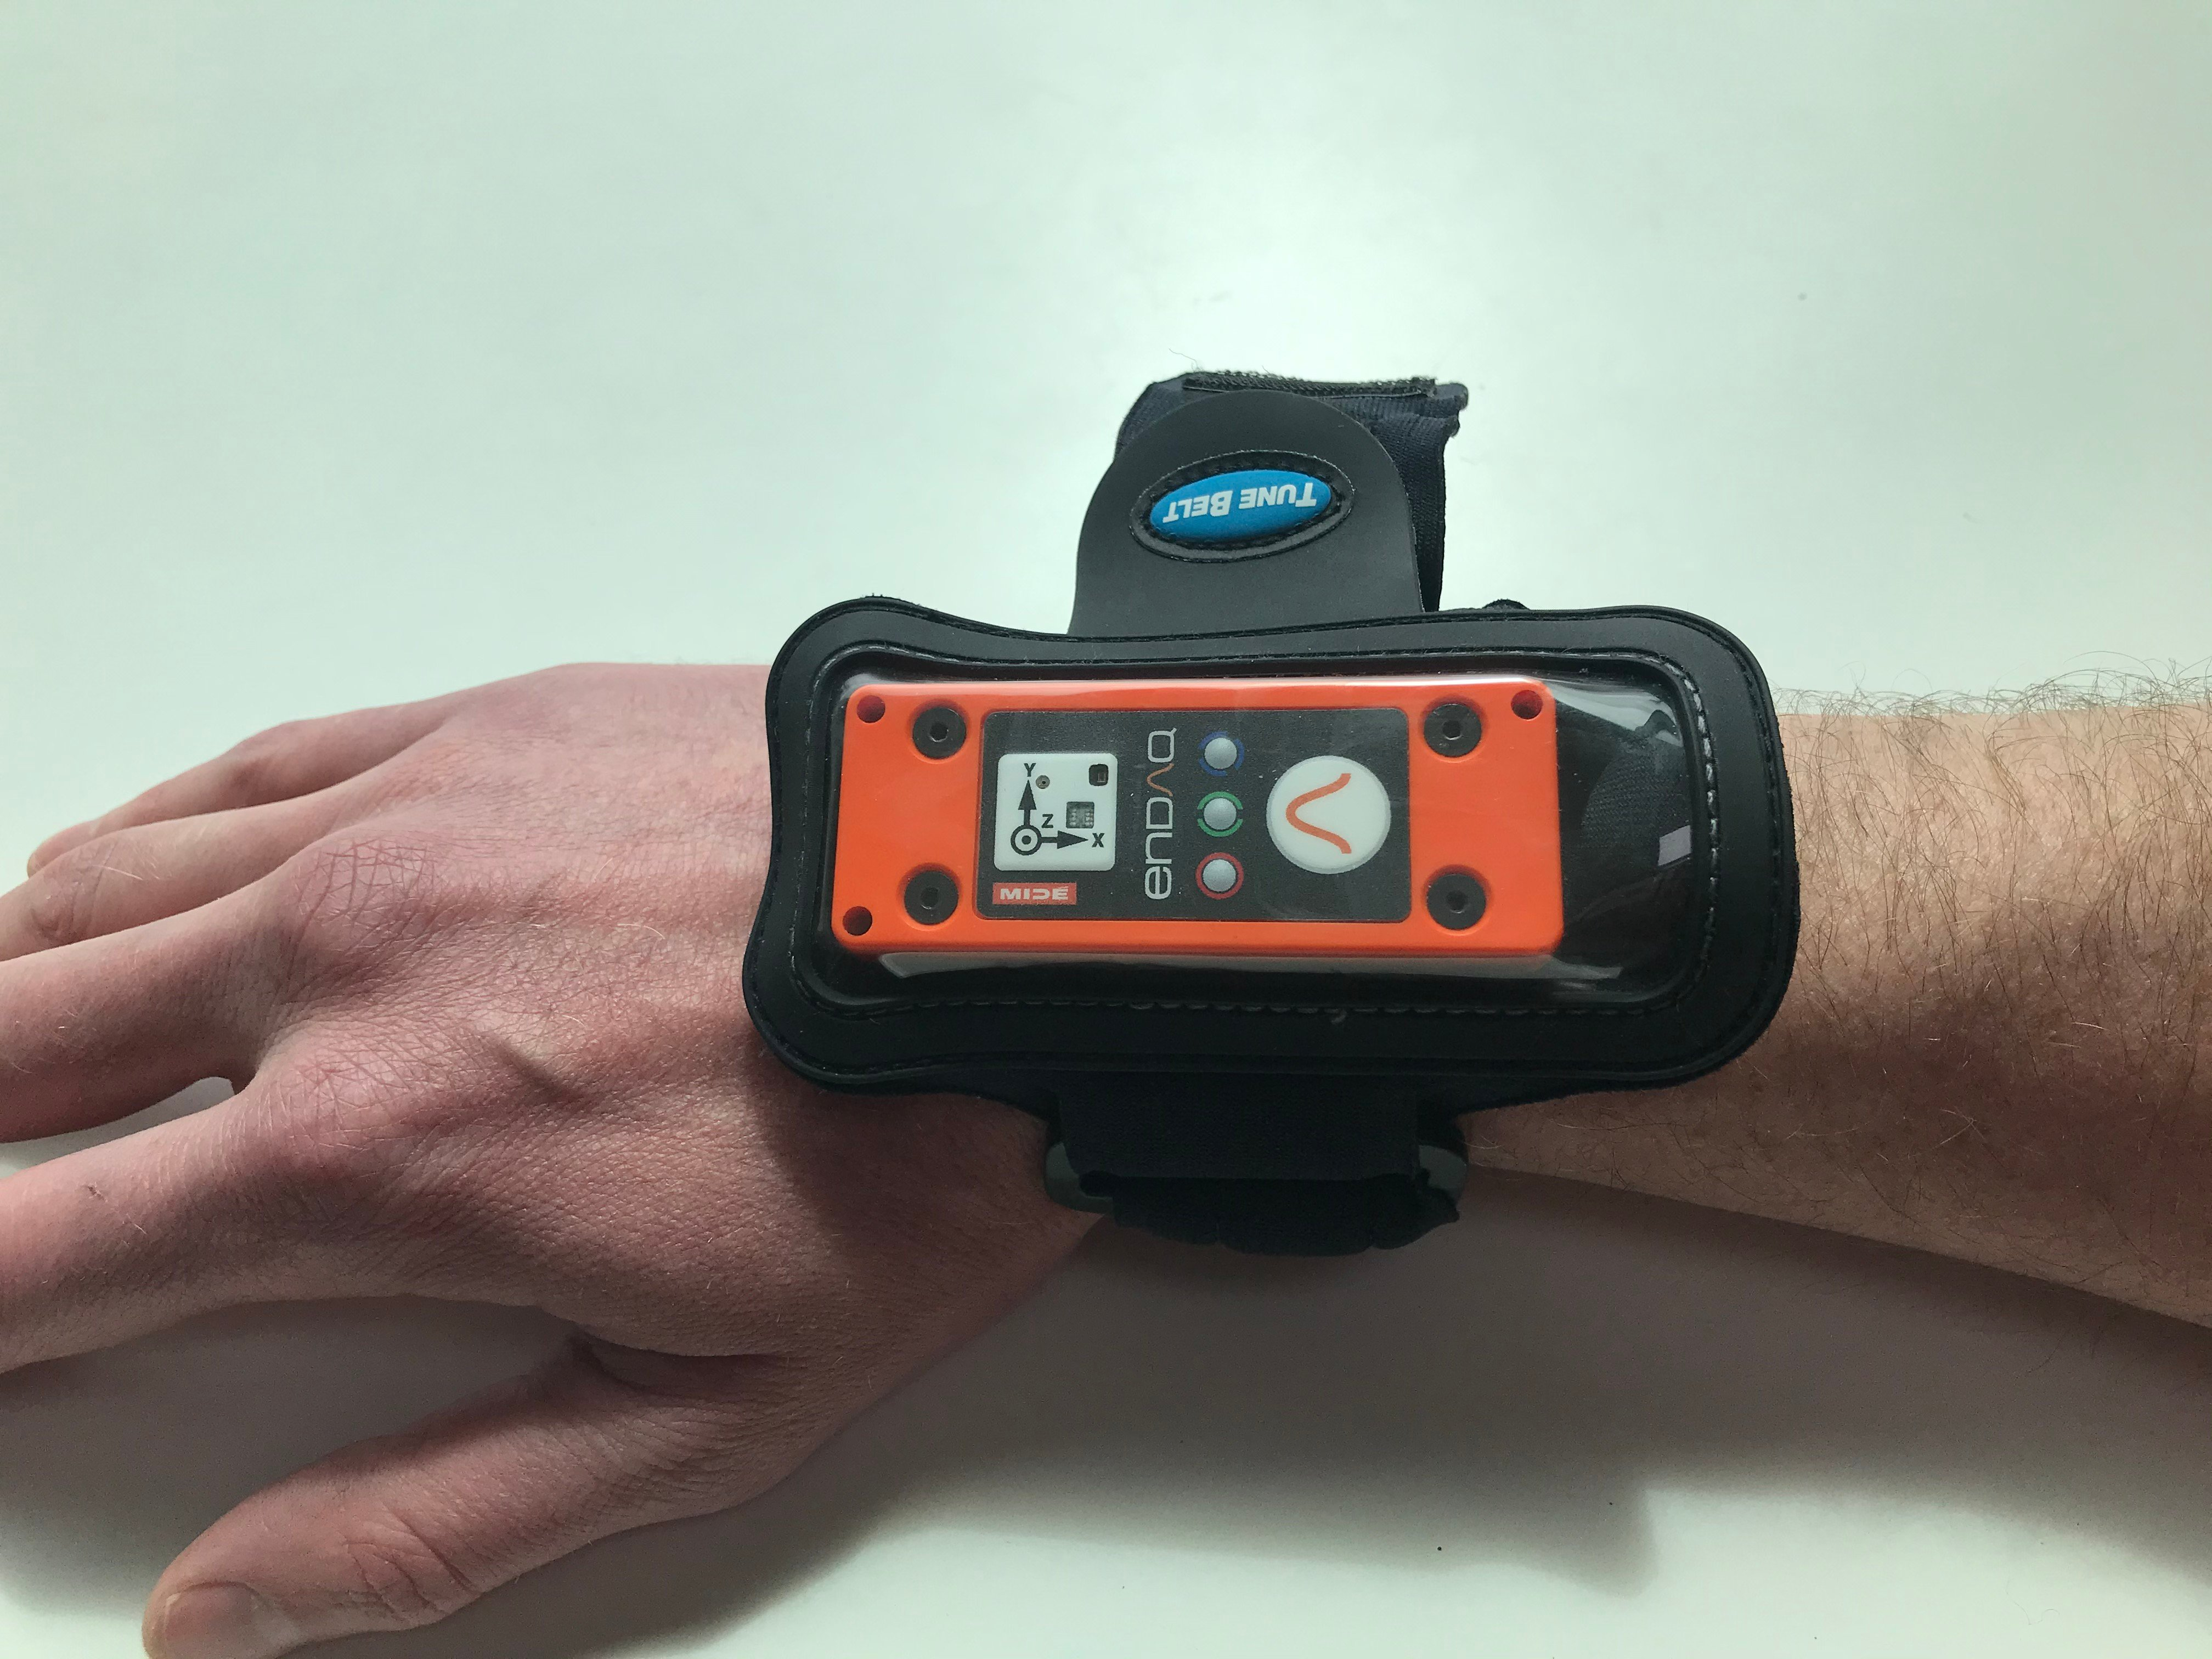 enDAQ sensor attached to wrist to gather shock and vibration data